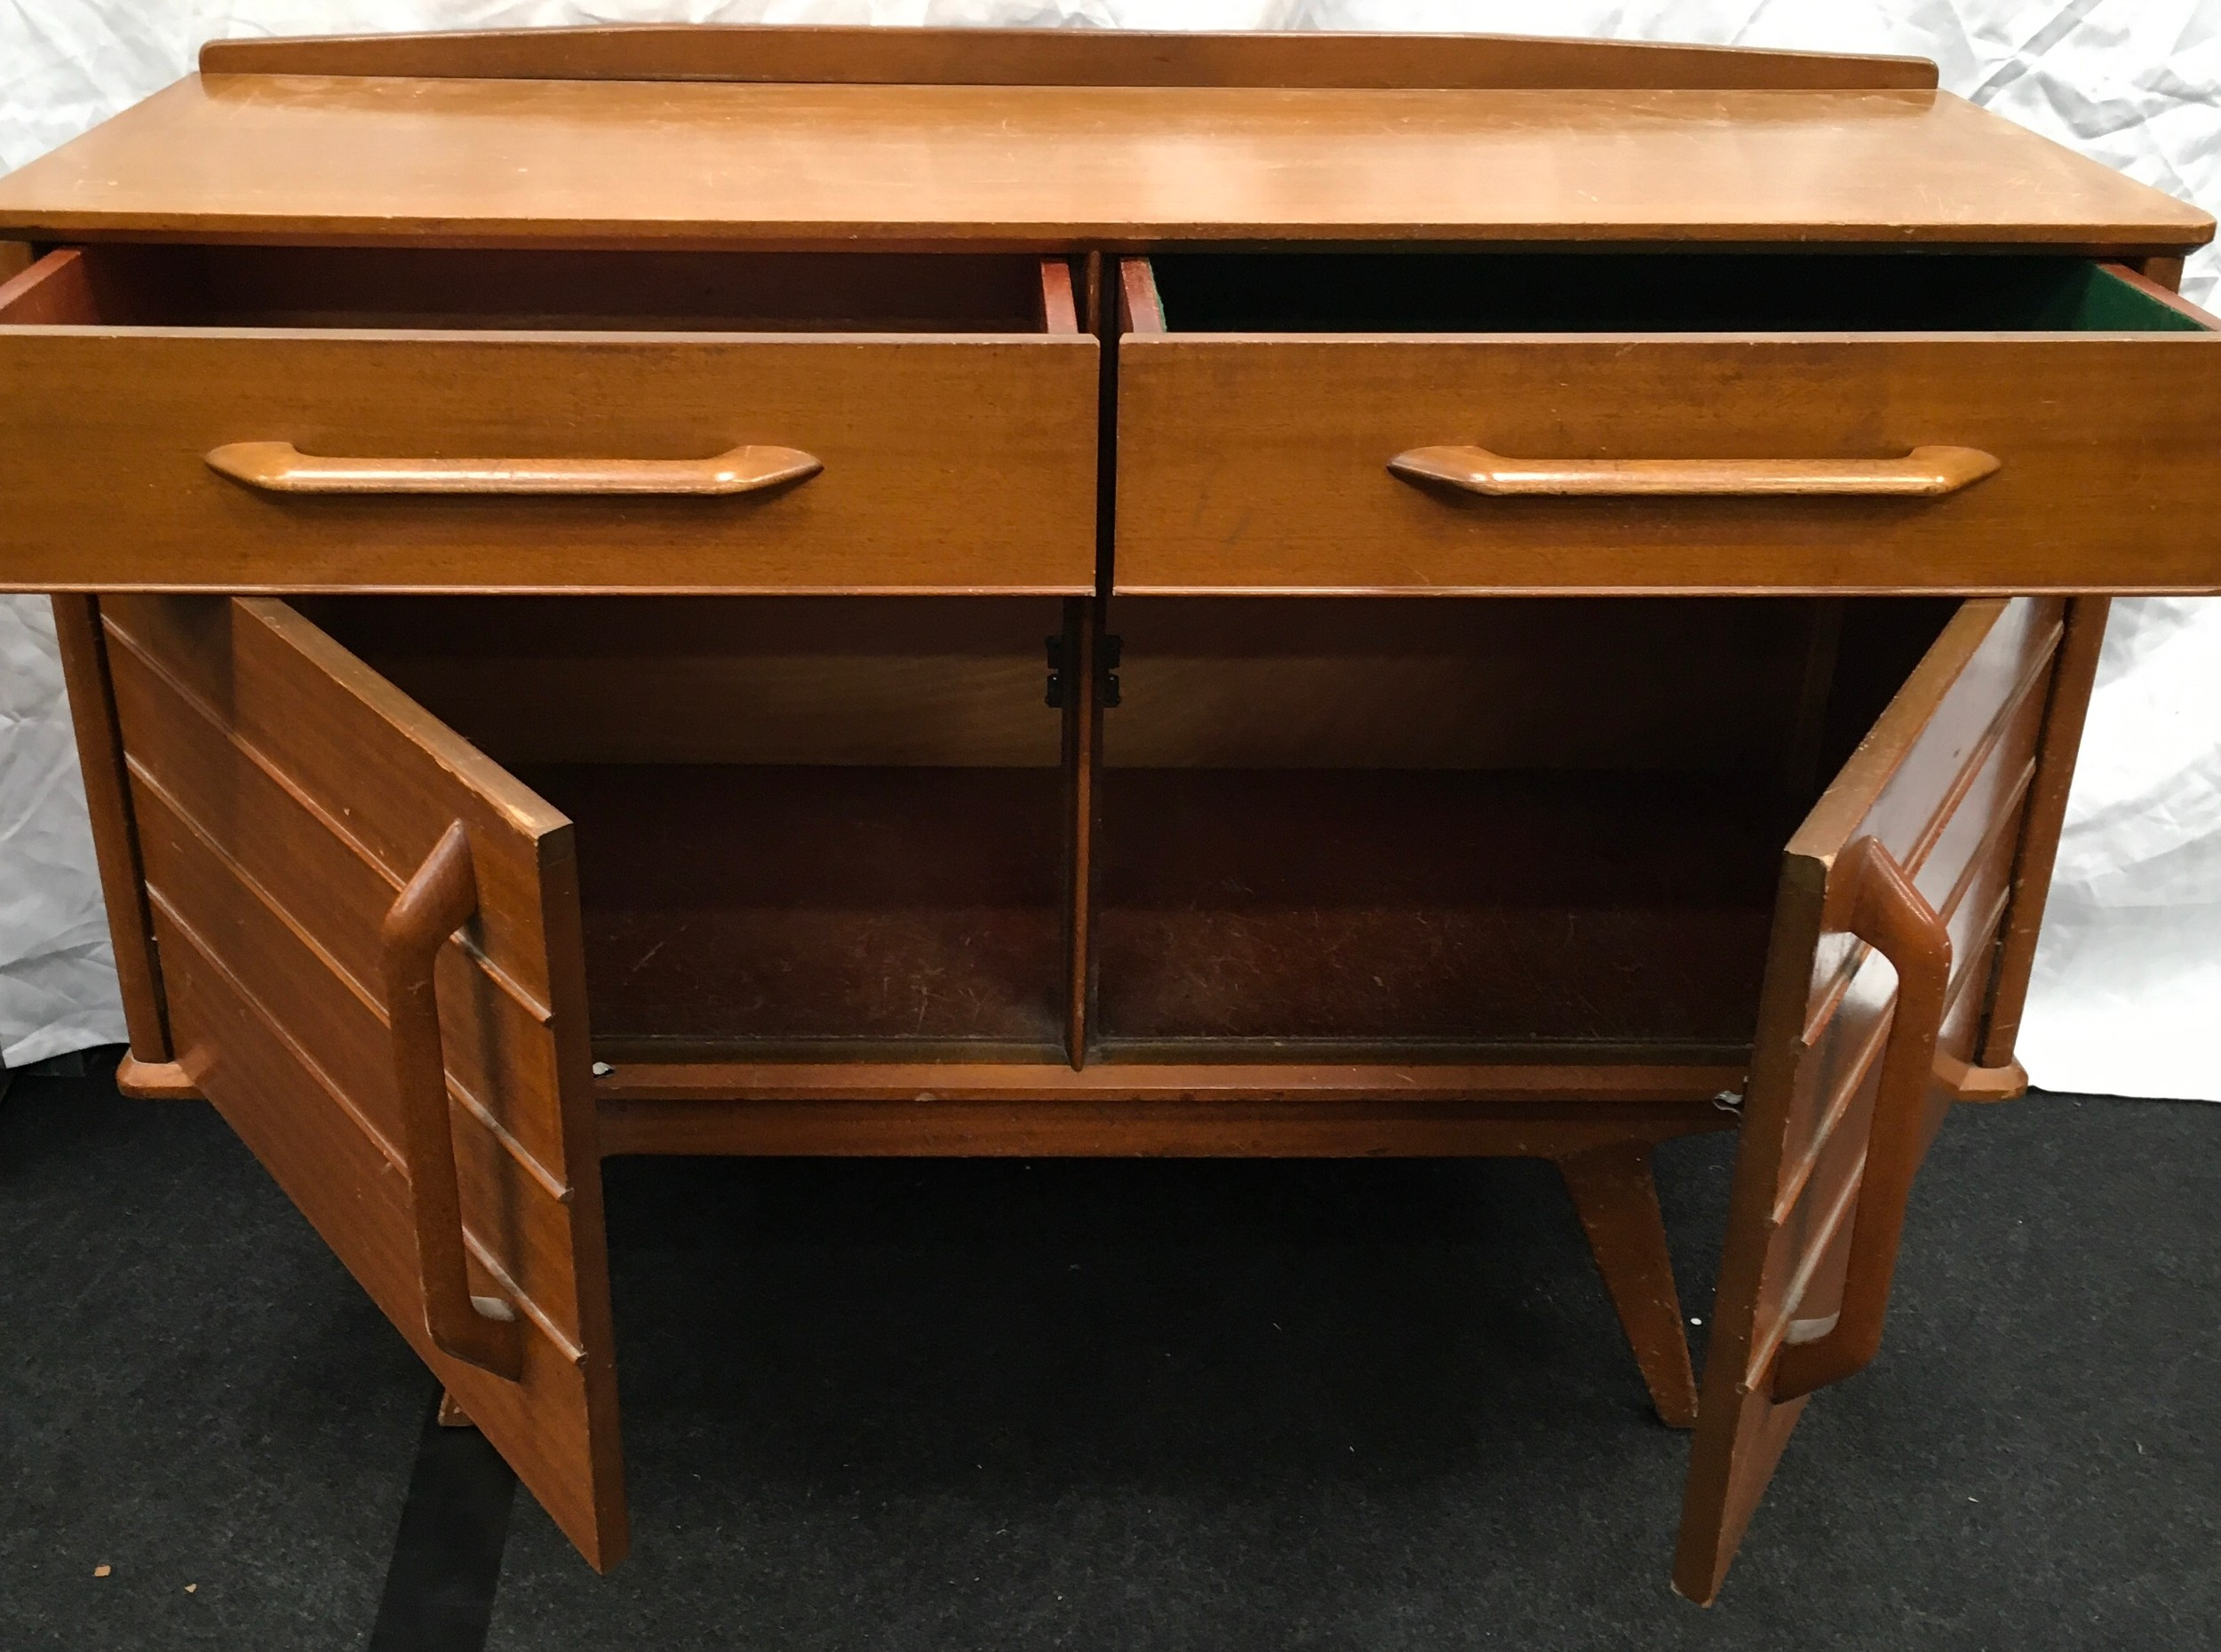 Teak mid 20th century two drawer two door sideboard by E Gomme Wycombe with makers mark 124x47x90cm. - Image 2 of 4